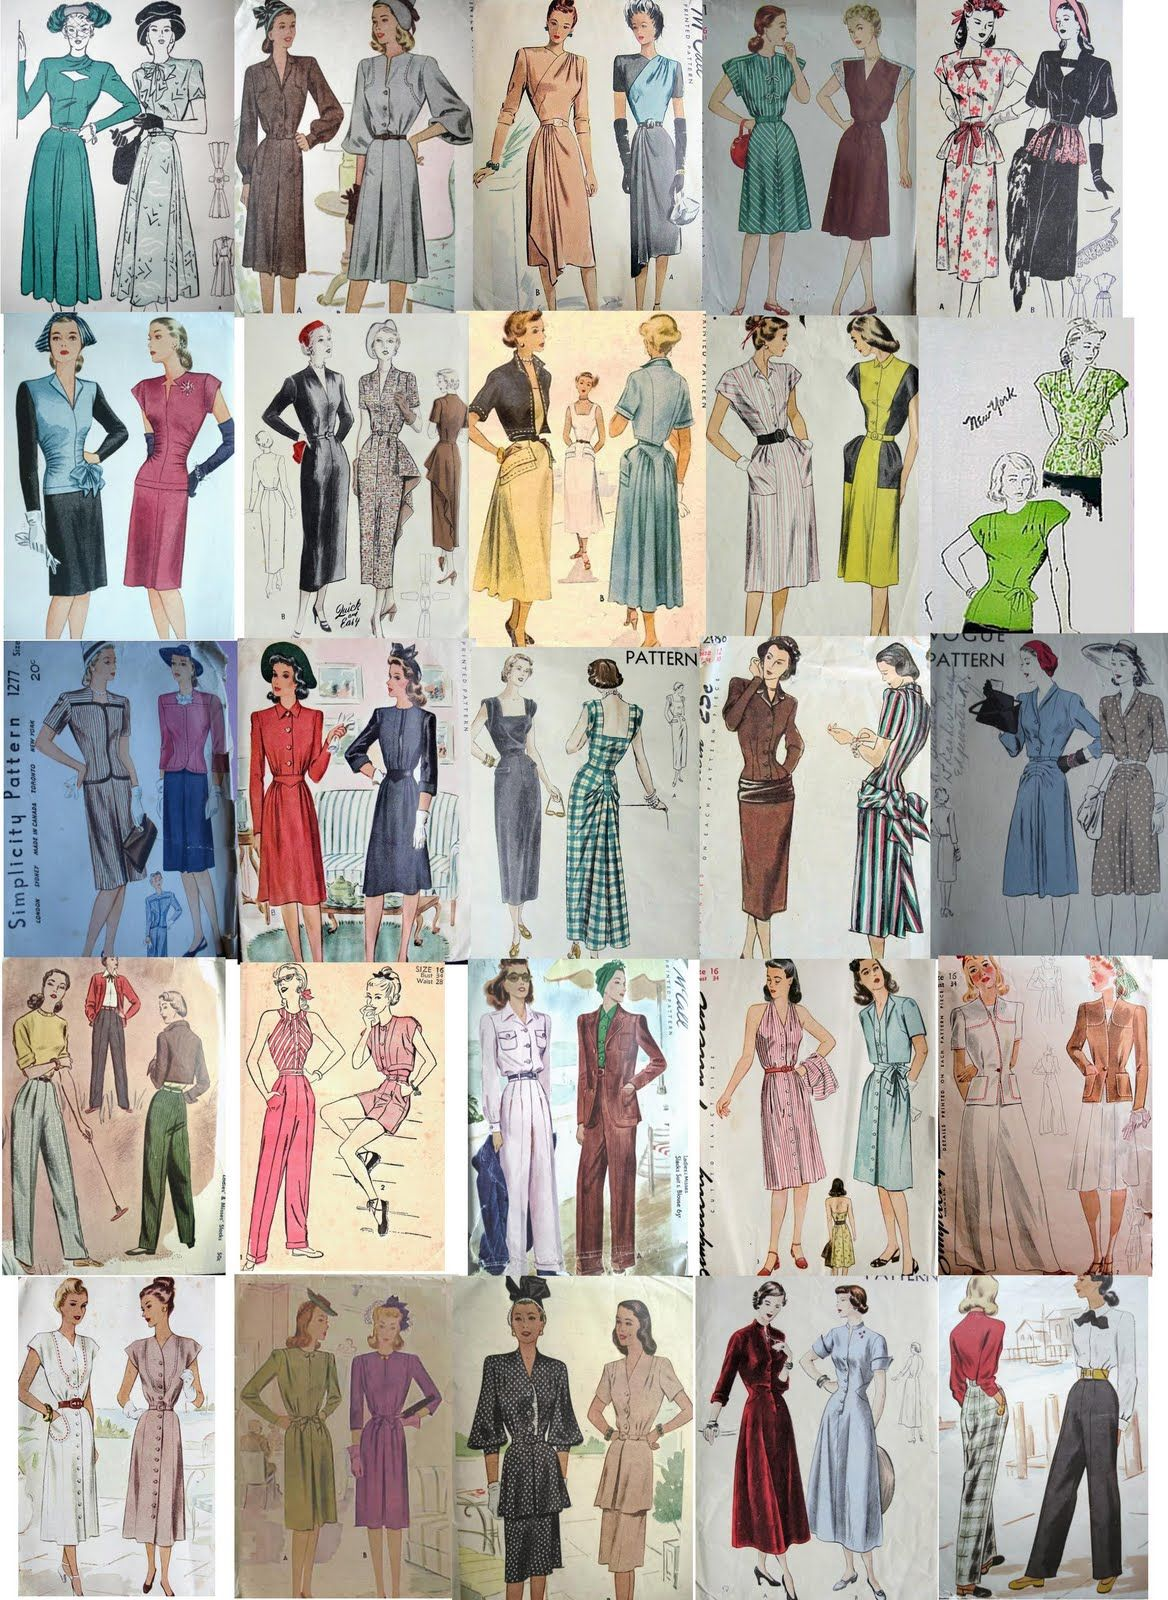 images of 1940 clothing | 1940's Fashion Designs for ...